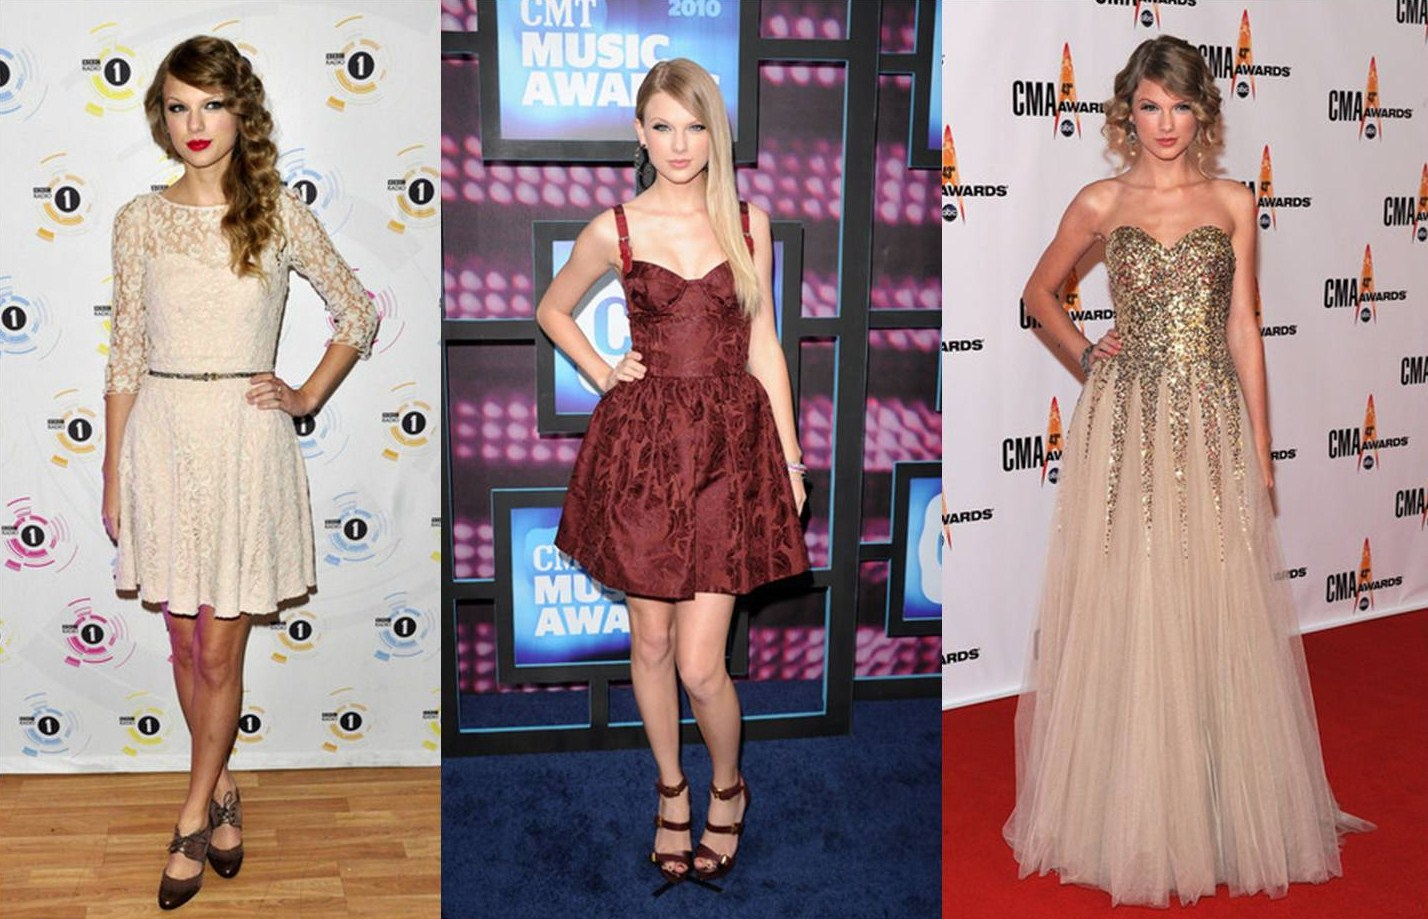 http://2.bp.blogspot.com/_8FJ3rtf5ffY/TOZwemRJtfI/AAAAAAAABPI/HgFgkekruHg/s1600/taylor+swift+style+queen+red+carpet+princess+dress.jpg